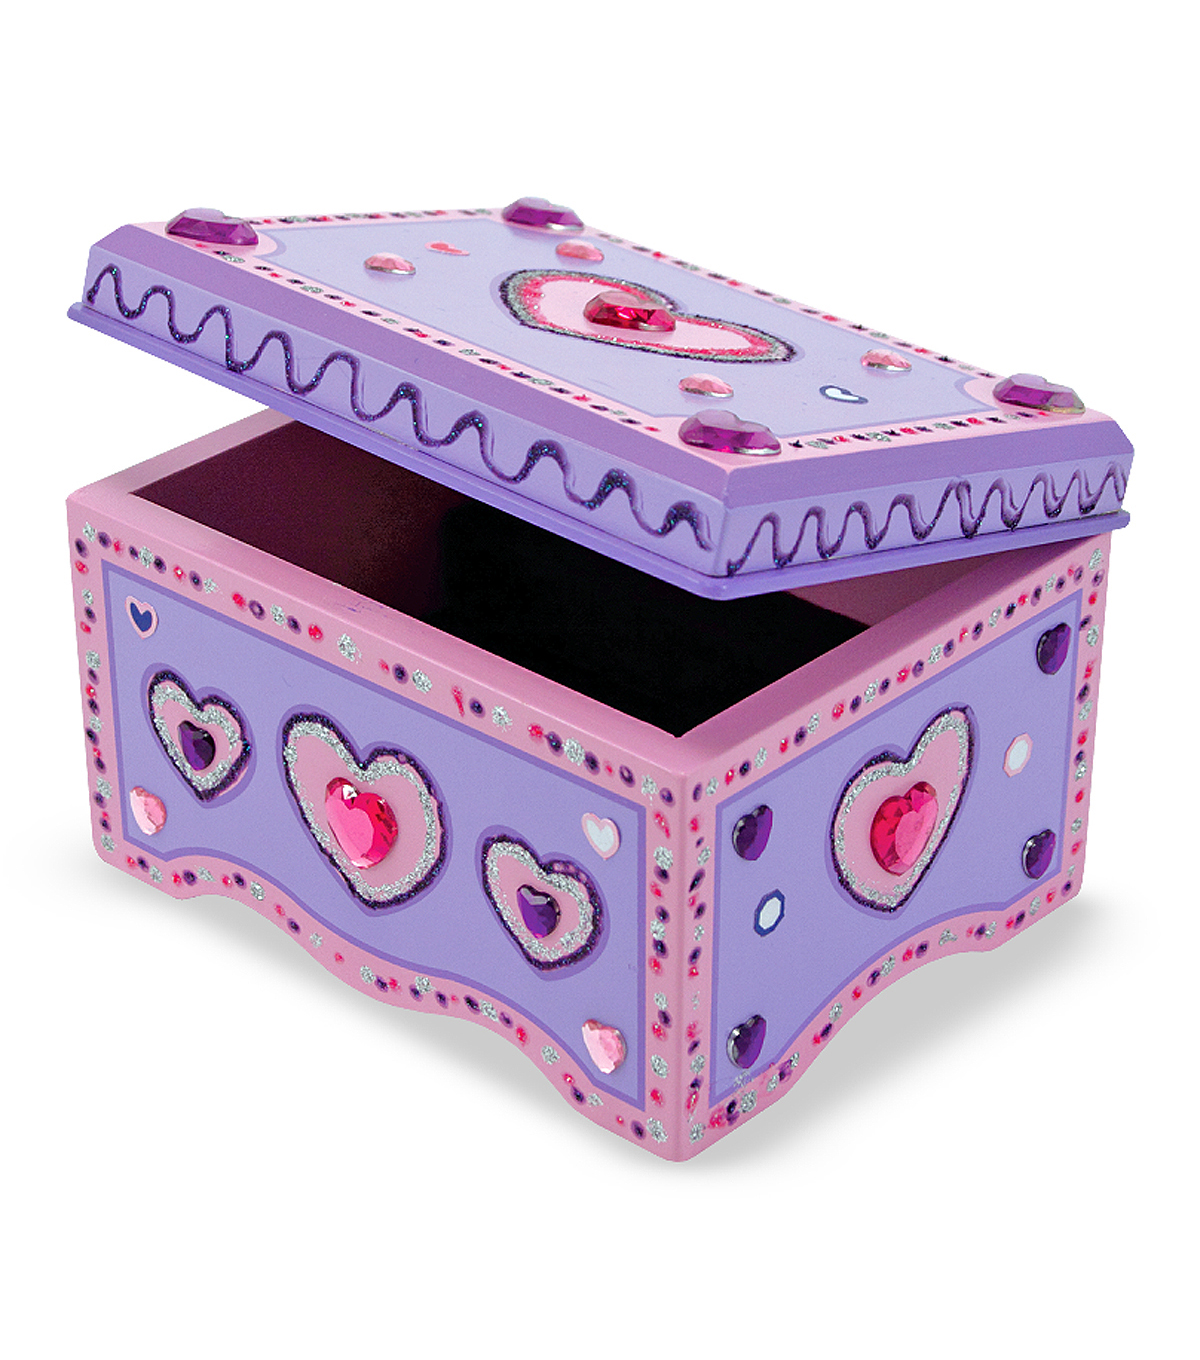 Melissa & Doug Design Your Own Jewelry Box Kit